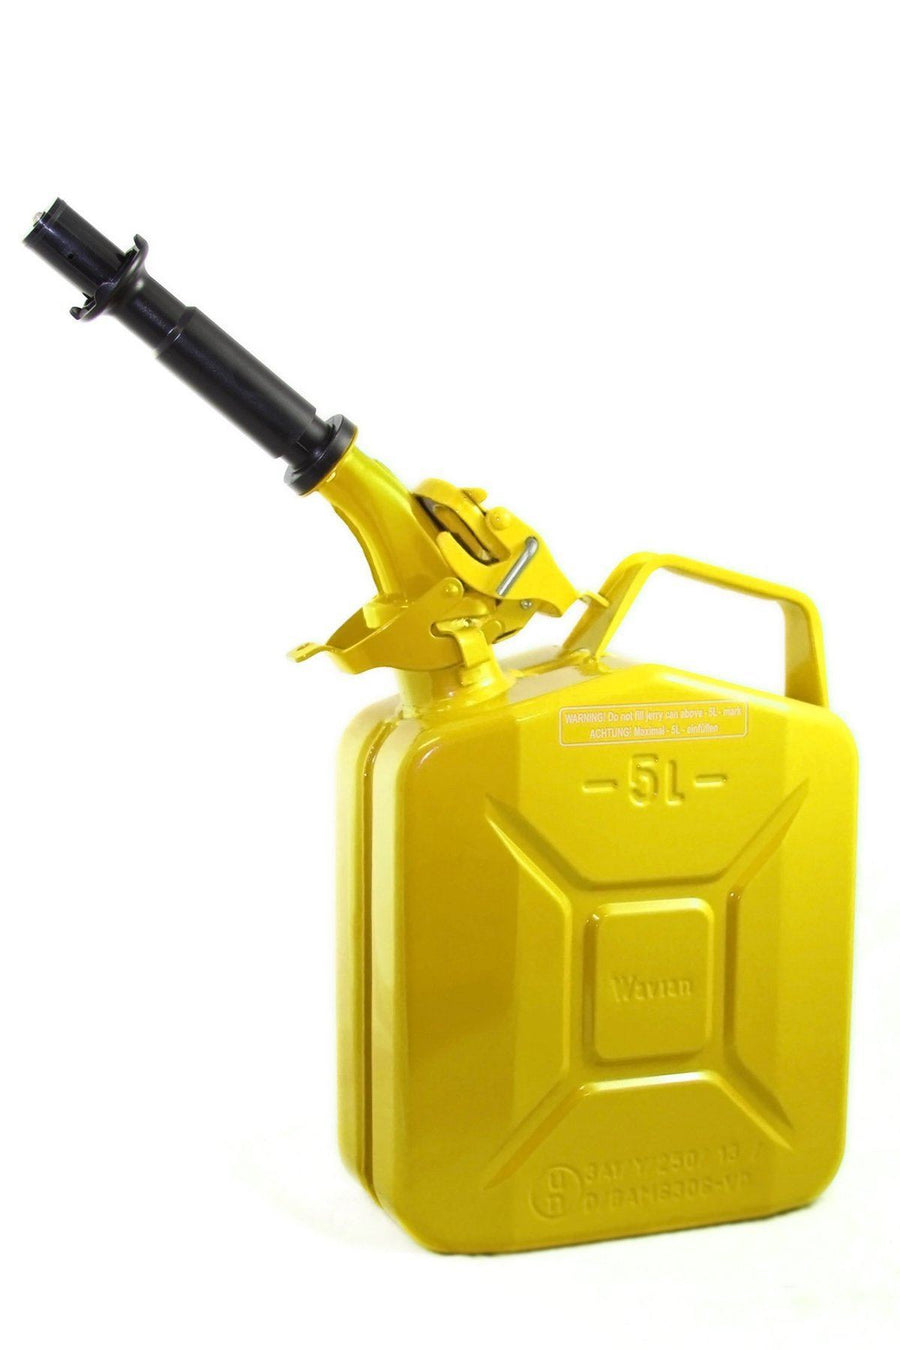 5L Wavian Leak-Proof Steel Fuel Can (1.3 Gallons) - Yellow | TreadWright